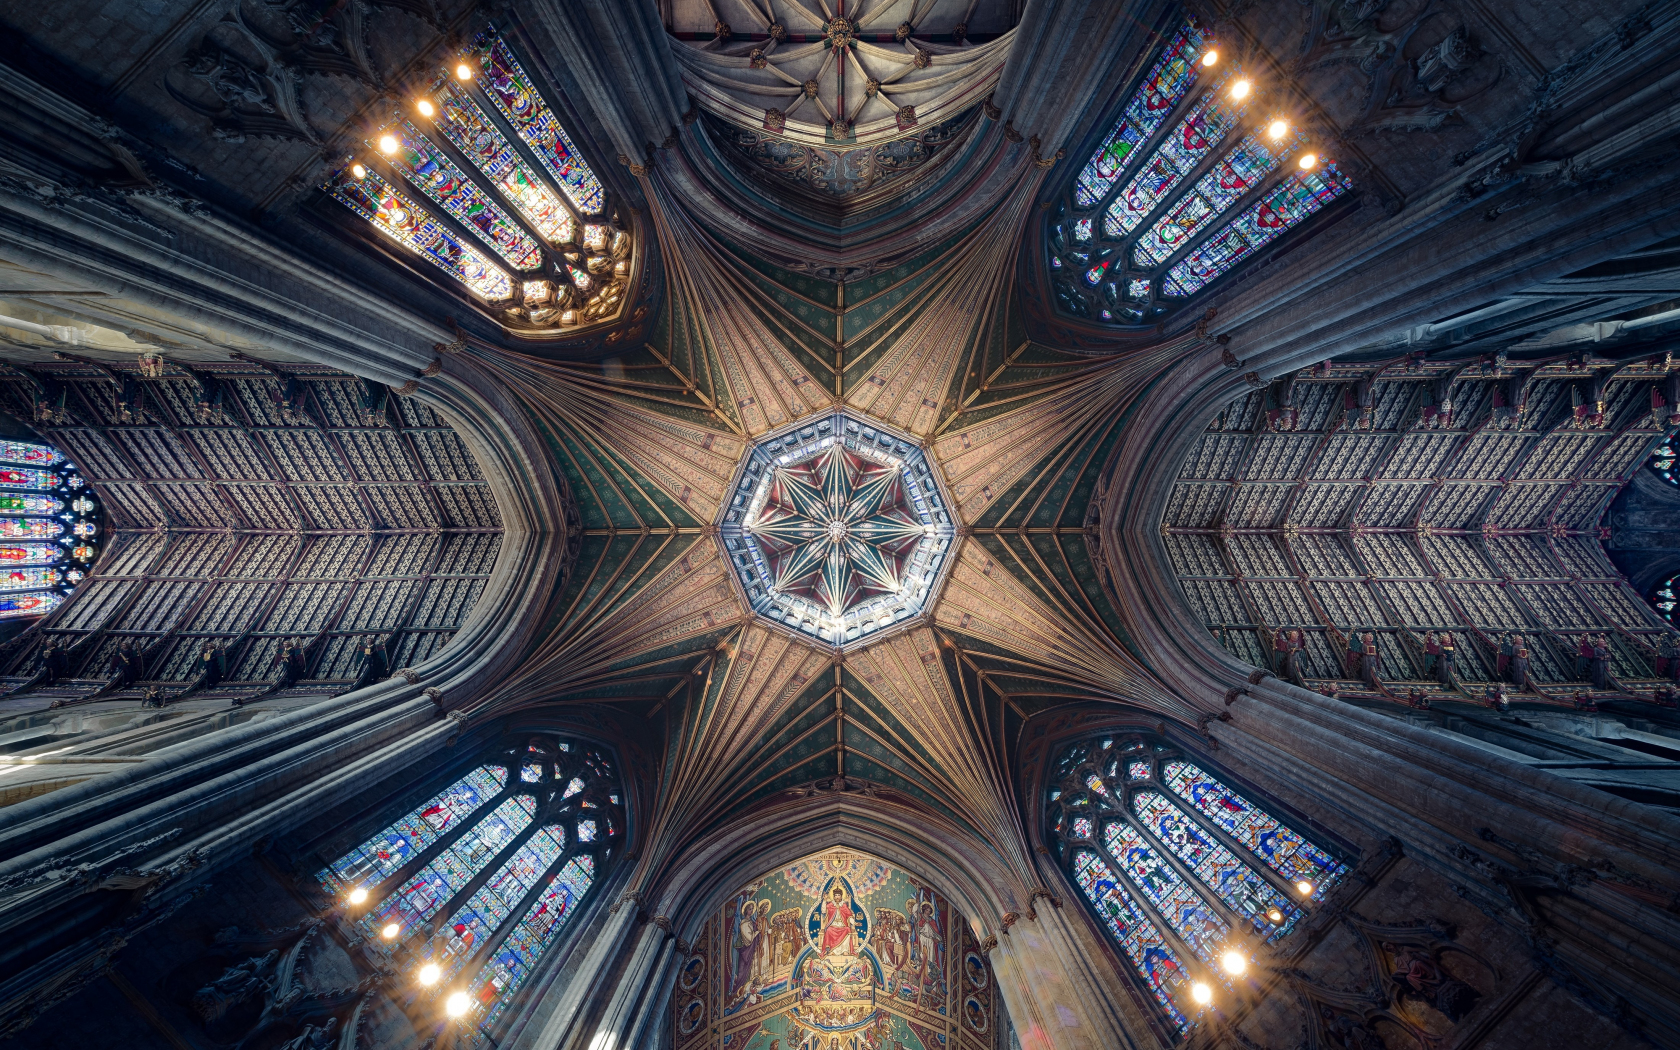 Ceiling, cathedral, symmetrical interior, architecture, 1680x1050 wallpaper